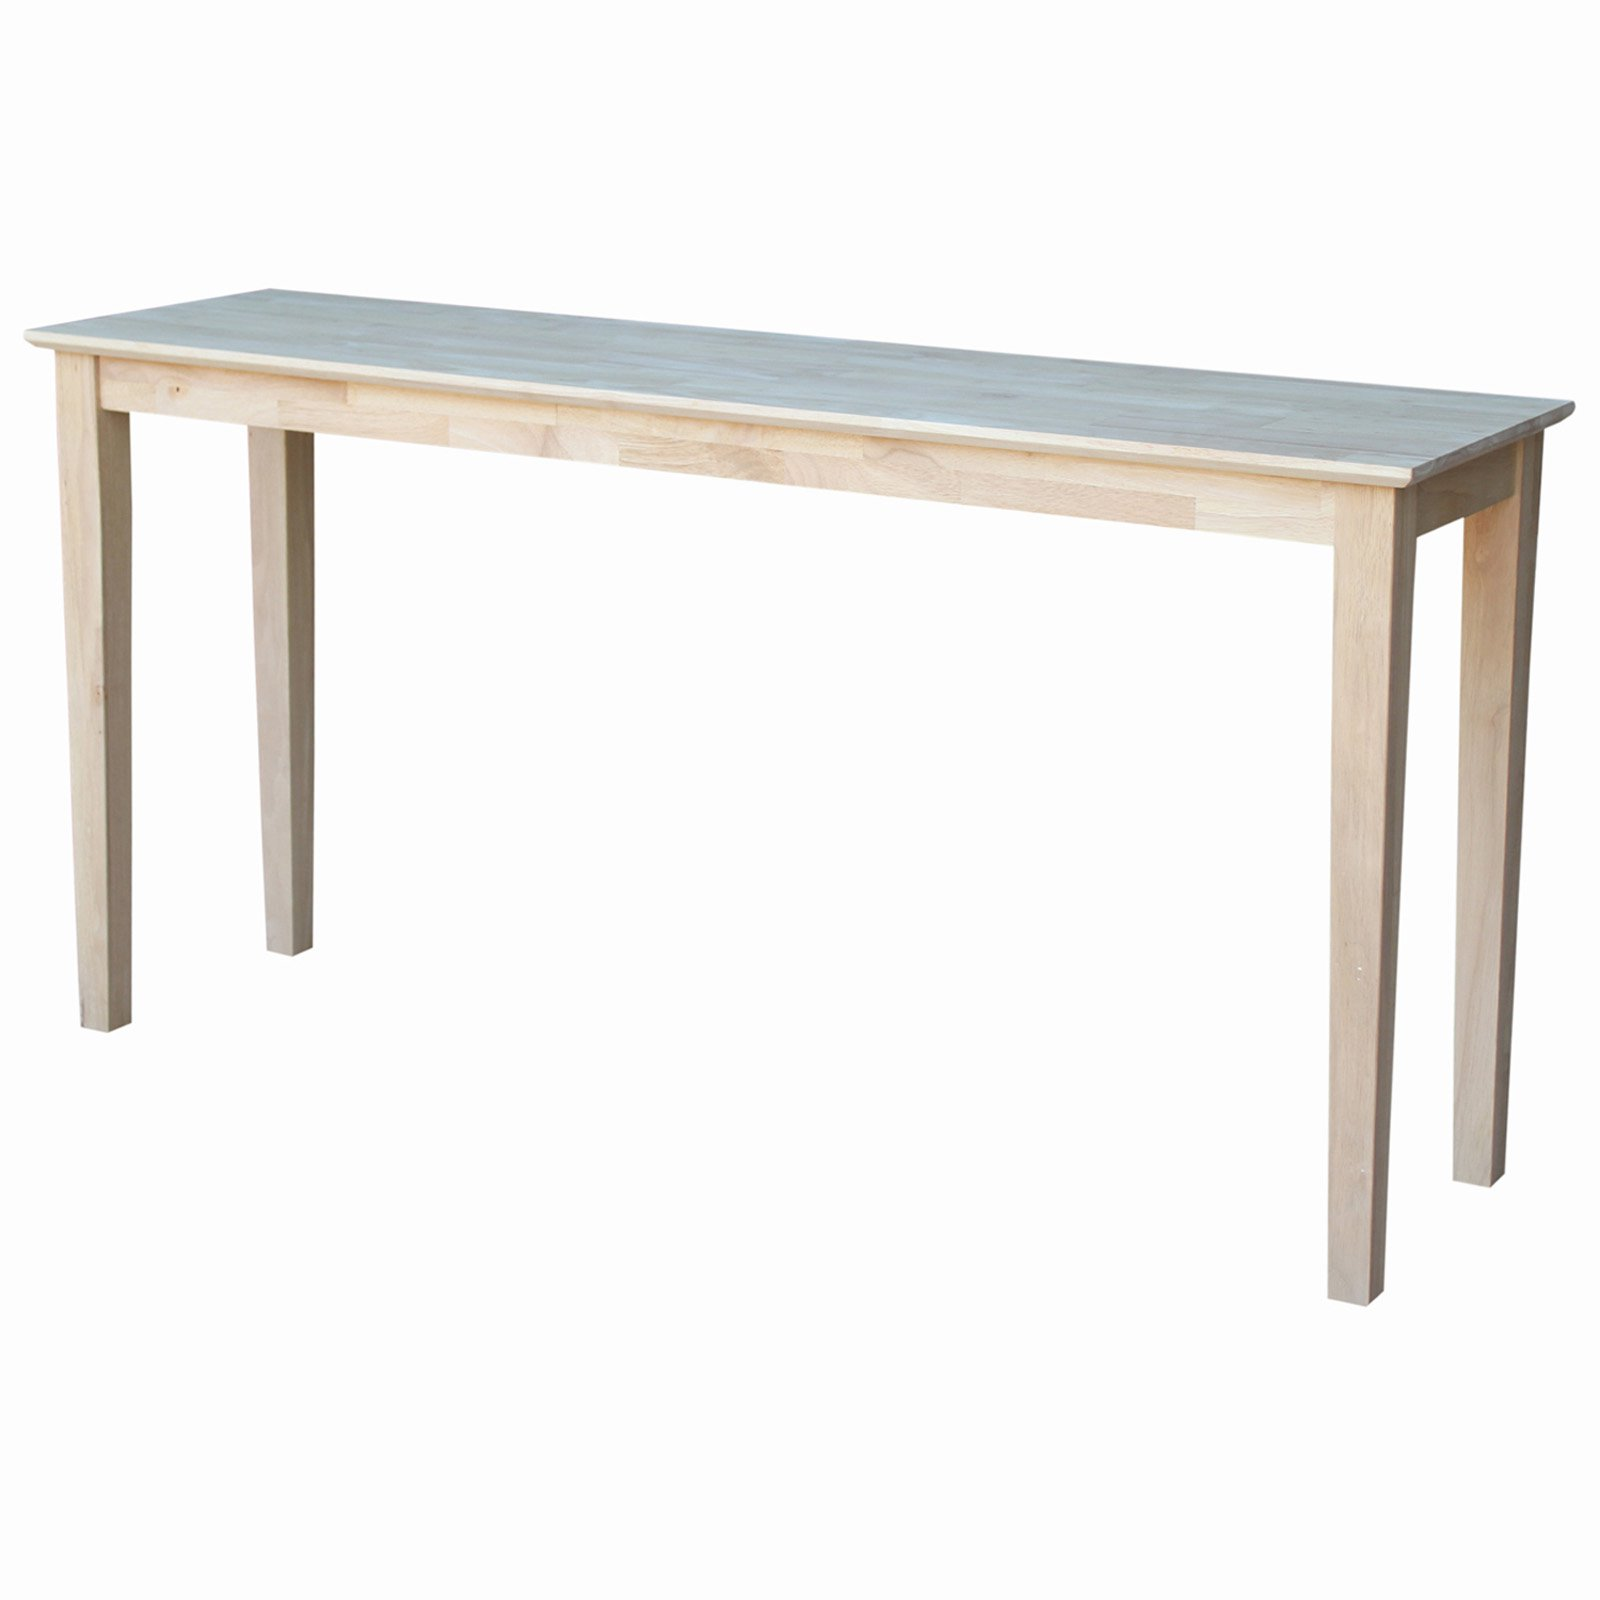 International Concepts Shaker Console Table, Extended Length